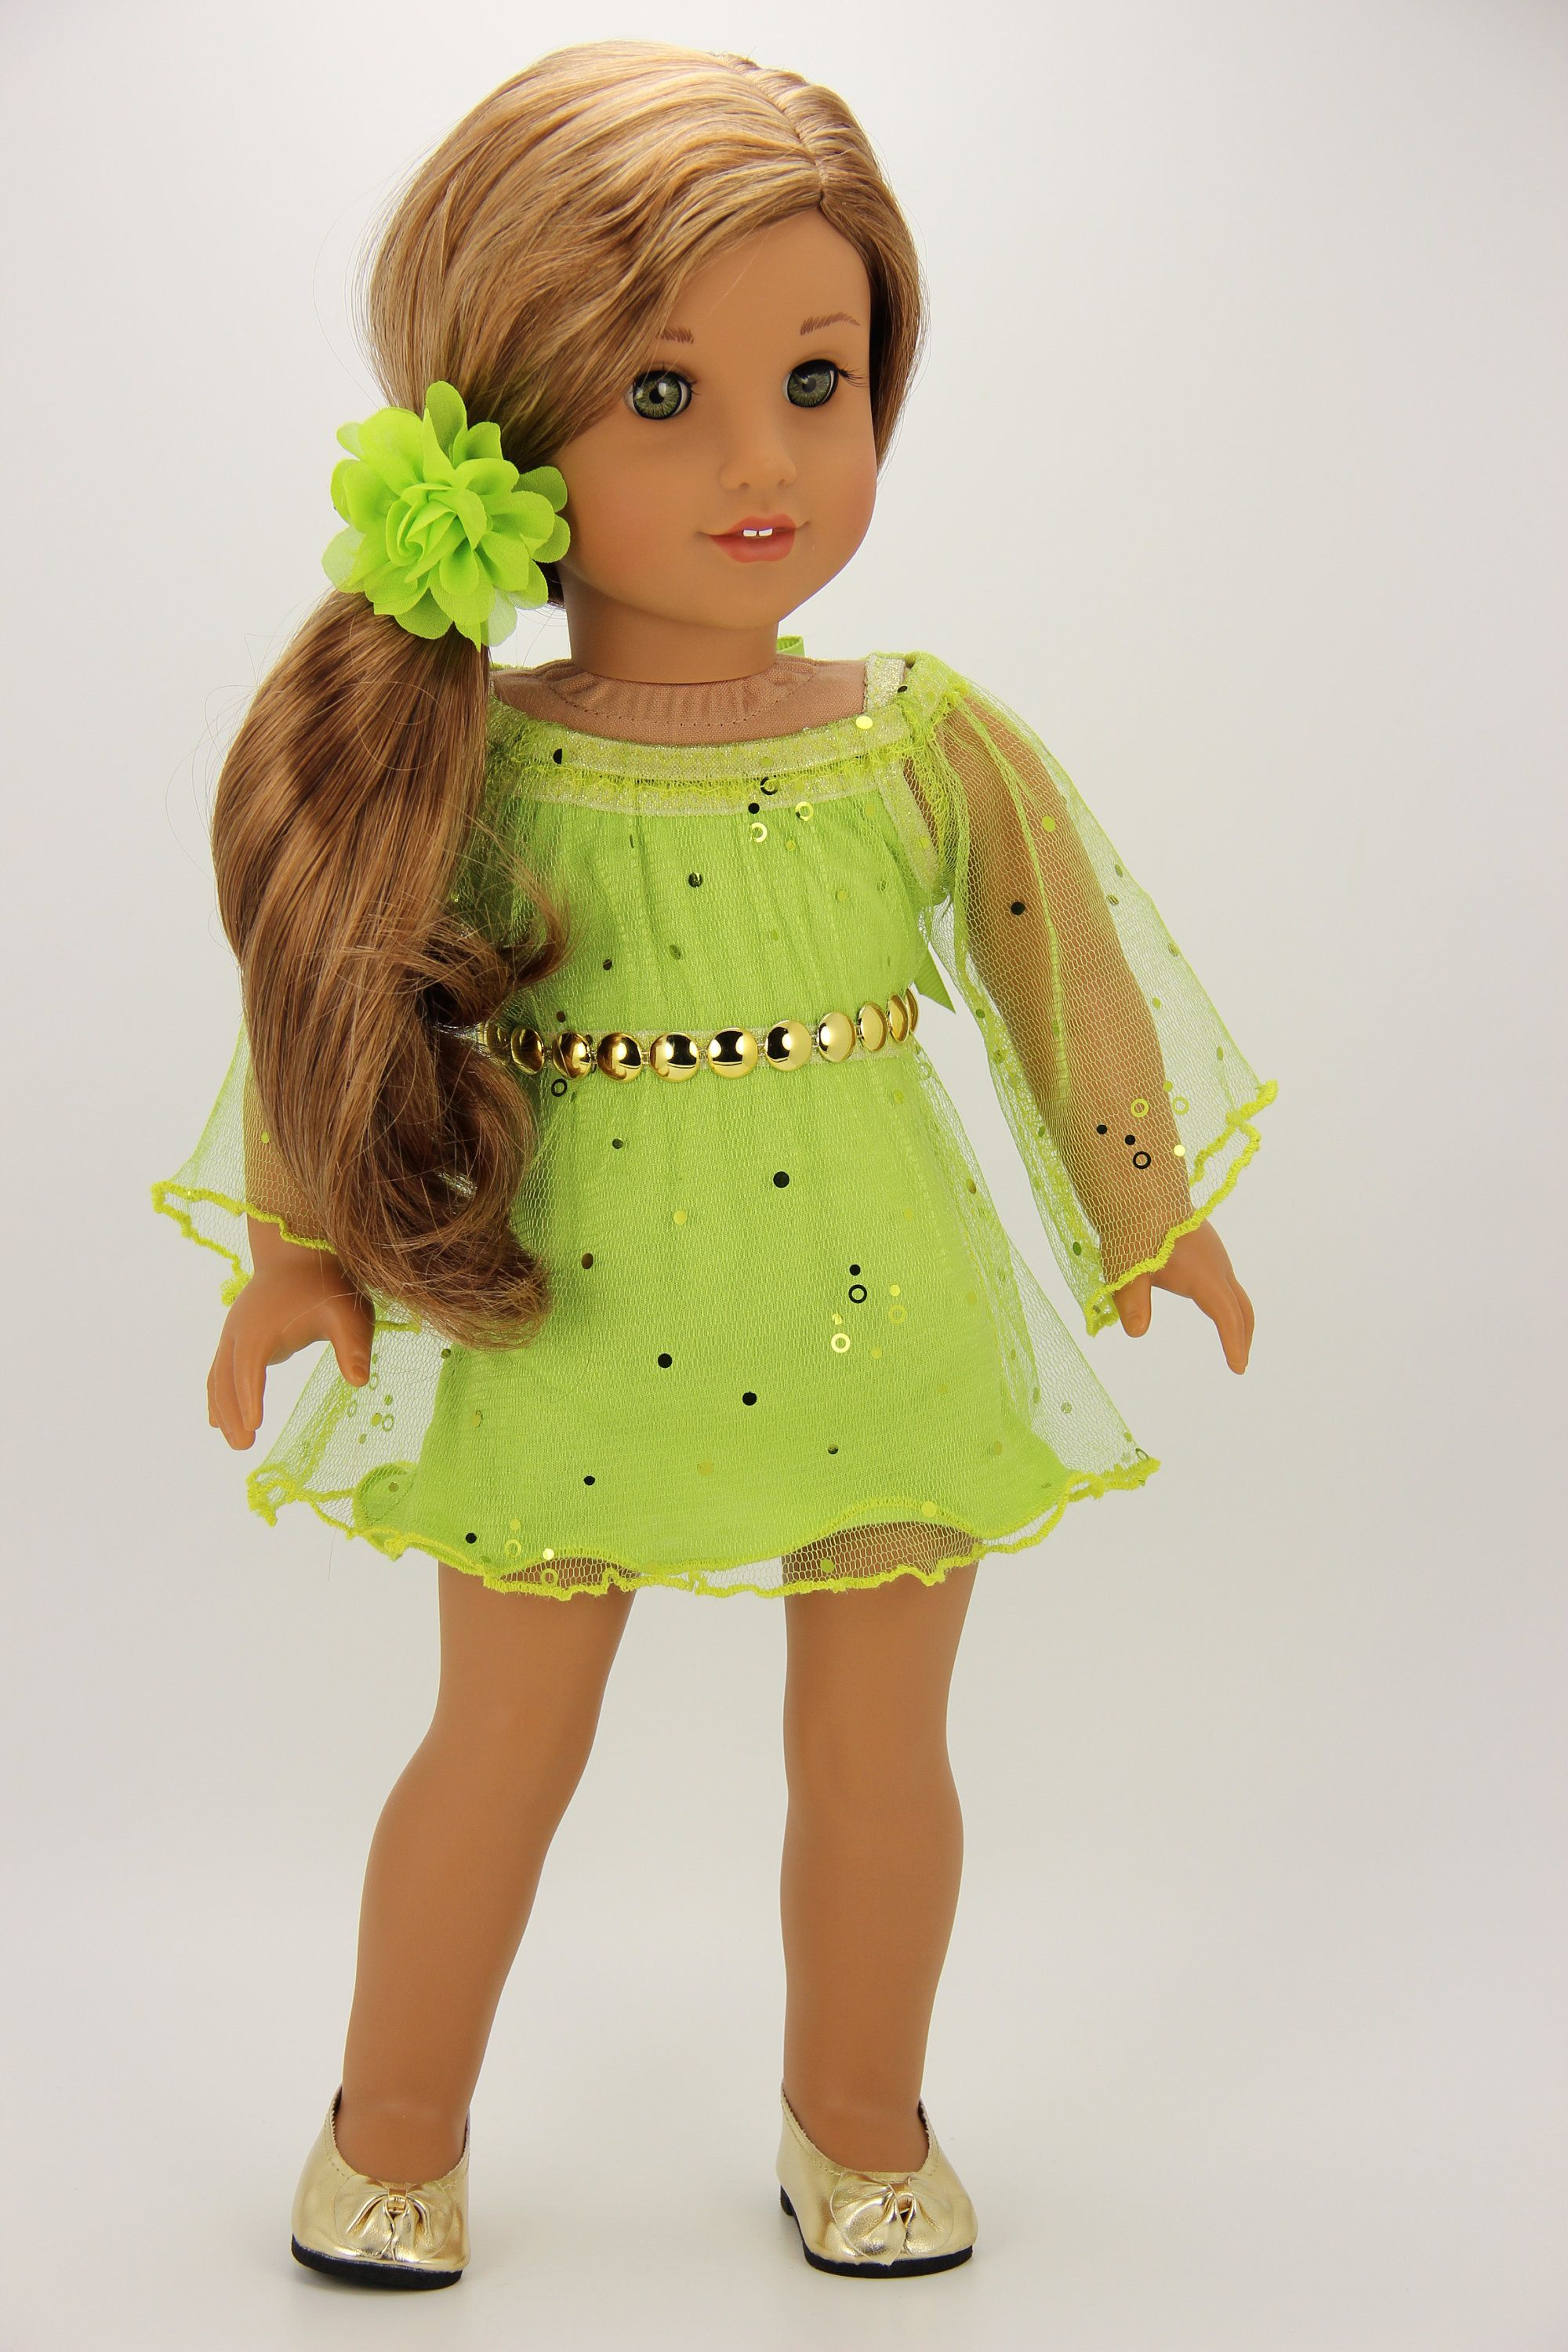 Handmade 18 inch doll clothes - Green 4 piece holiday dress outfit (1207) #18inchdollsandclothes